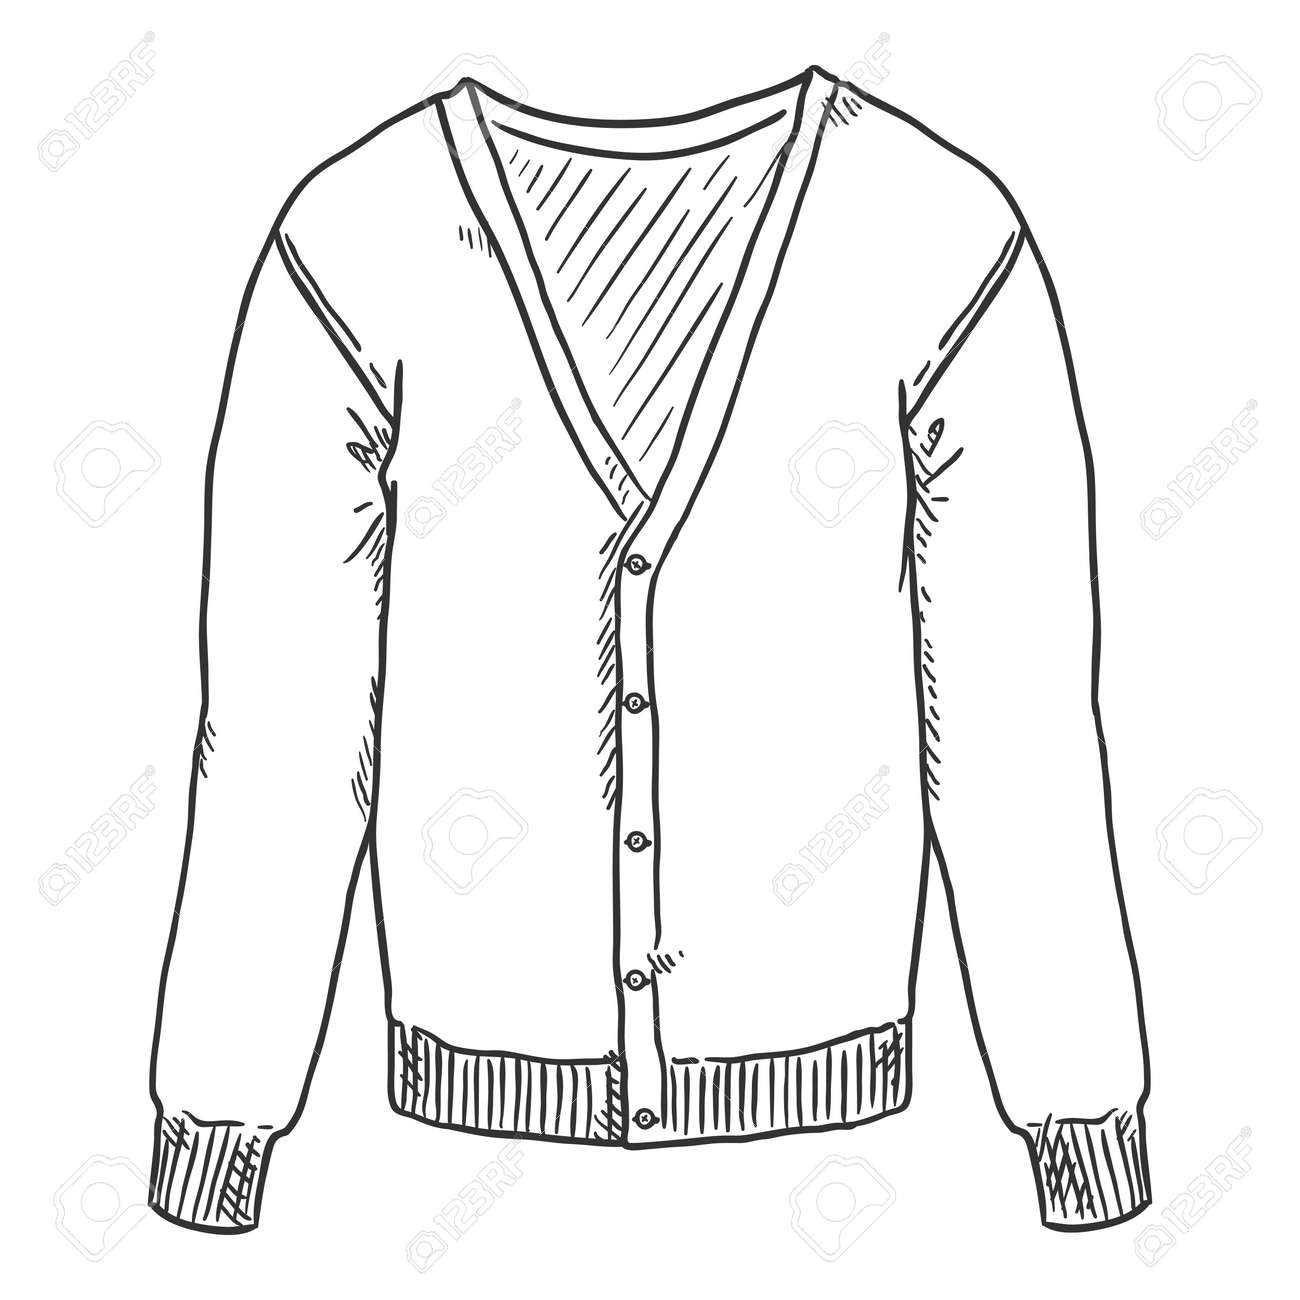 Vector Hand Drawn Sketch Cardigan Isolated Illustration - 169663667